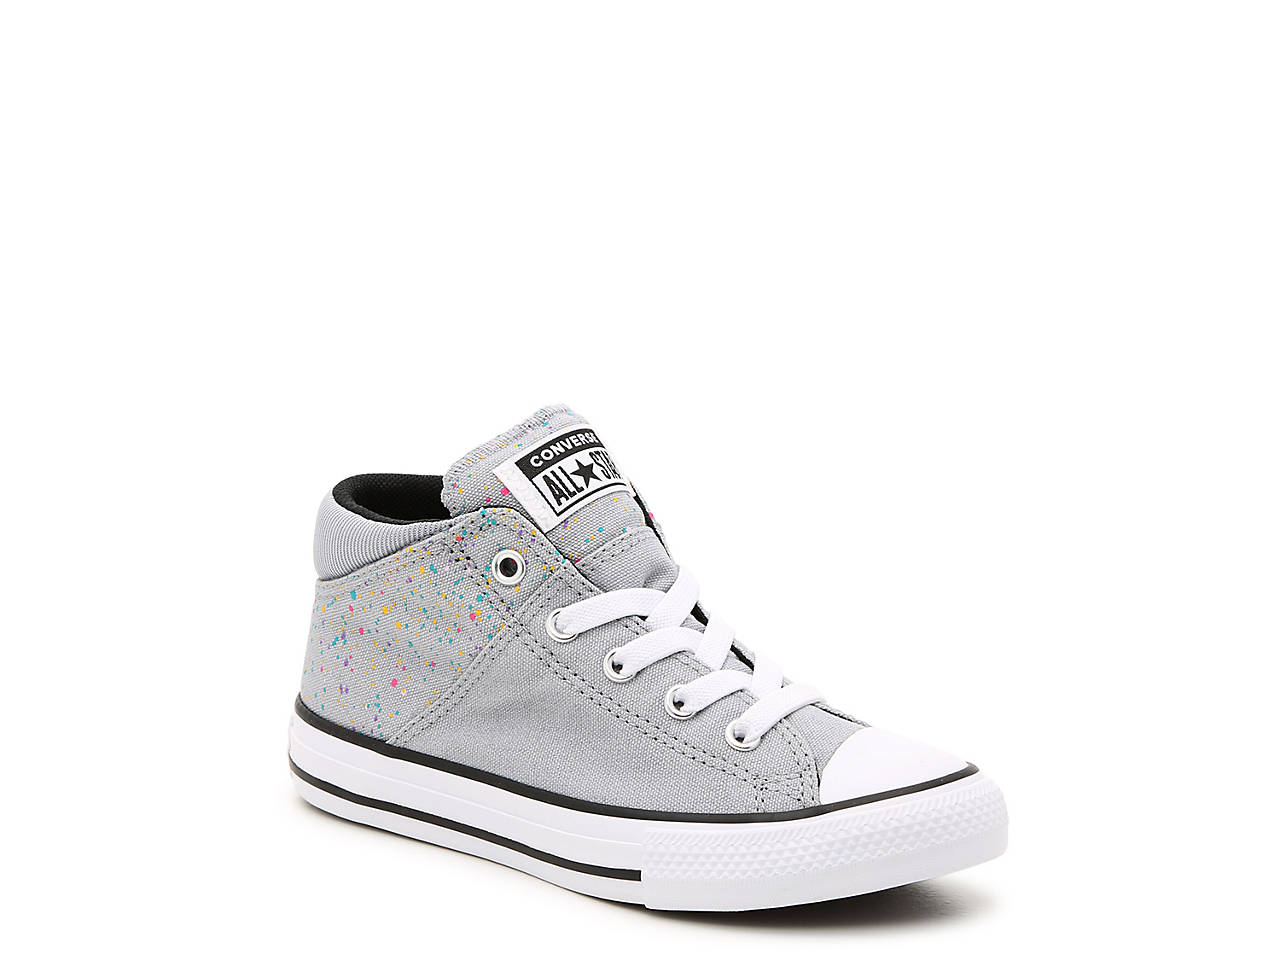 2c5524aedded0 Chuck Taylor All Star Madison Galaxy Dust Mid-Top Sneaker - Kids'